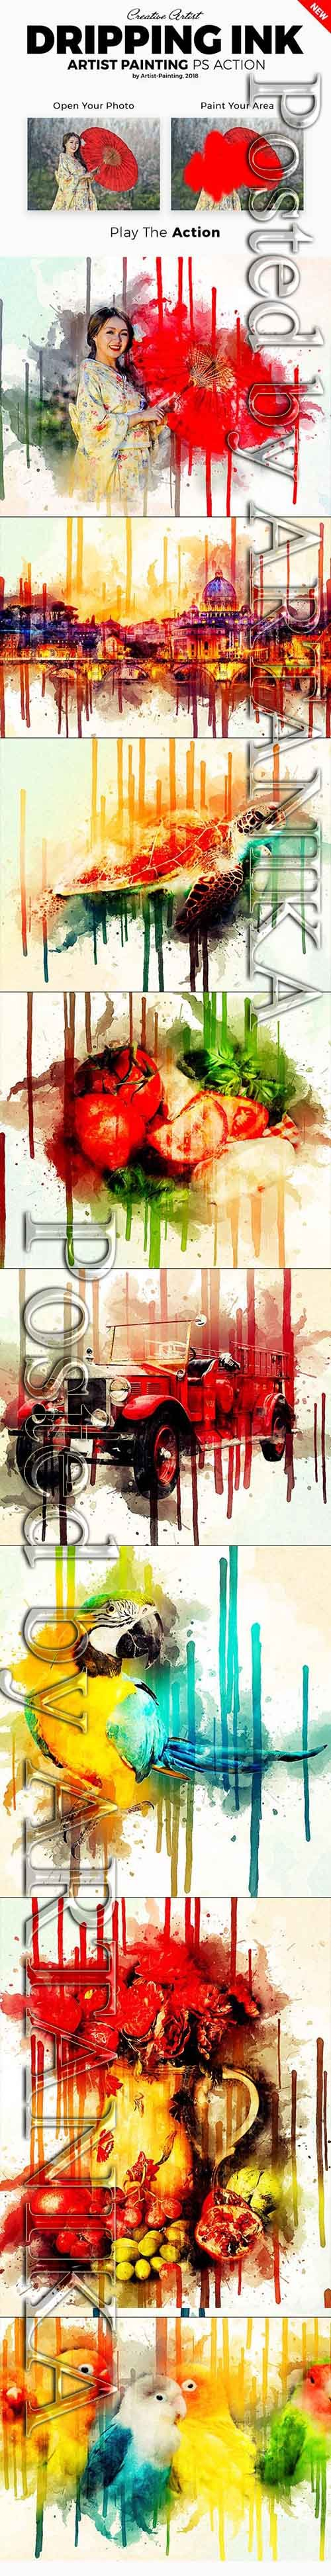 Dripping Ink Artist Painting Photoshop Action 21399581